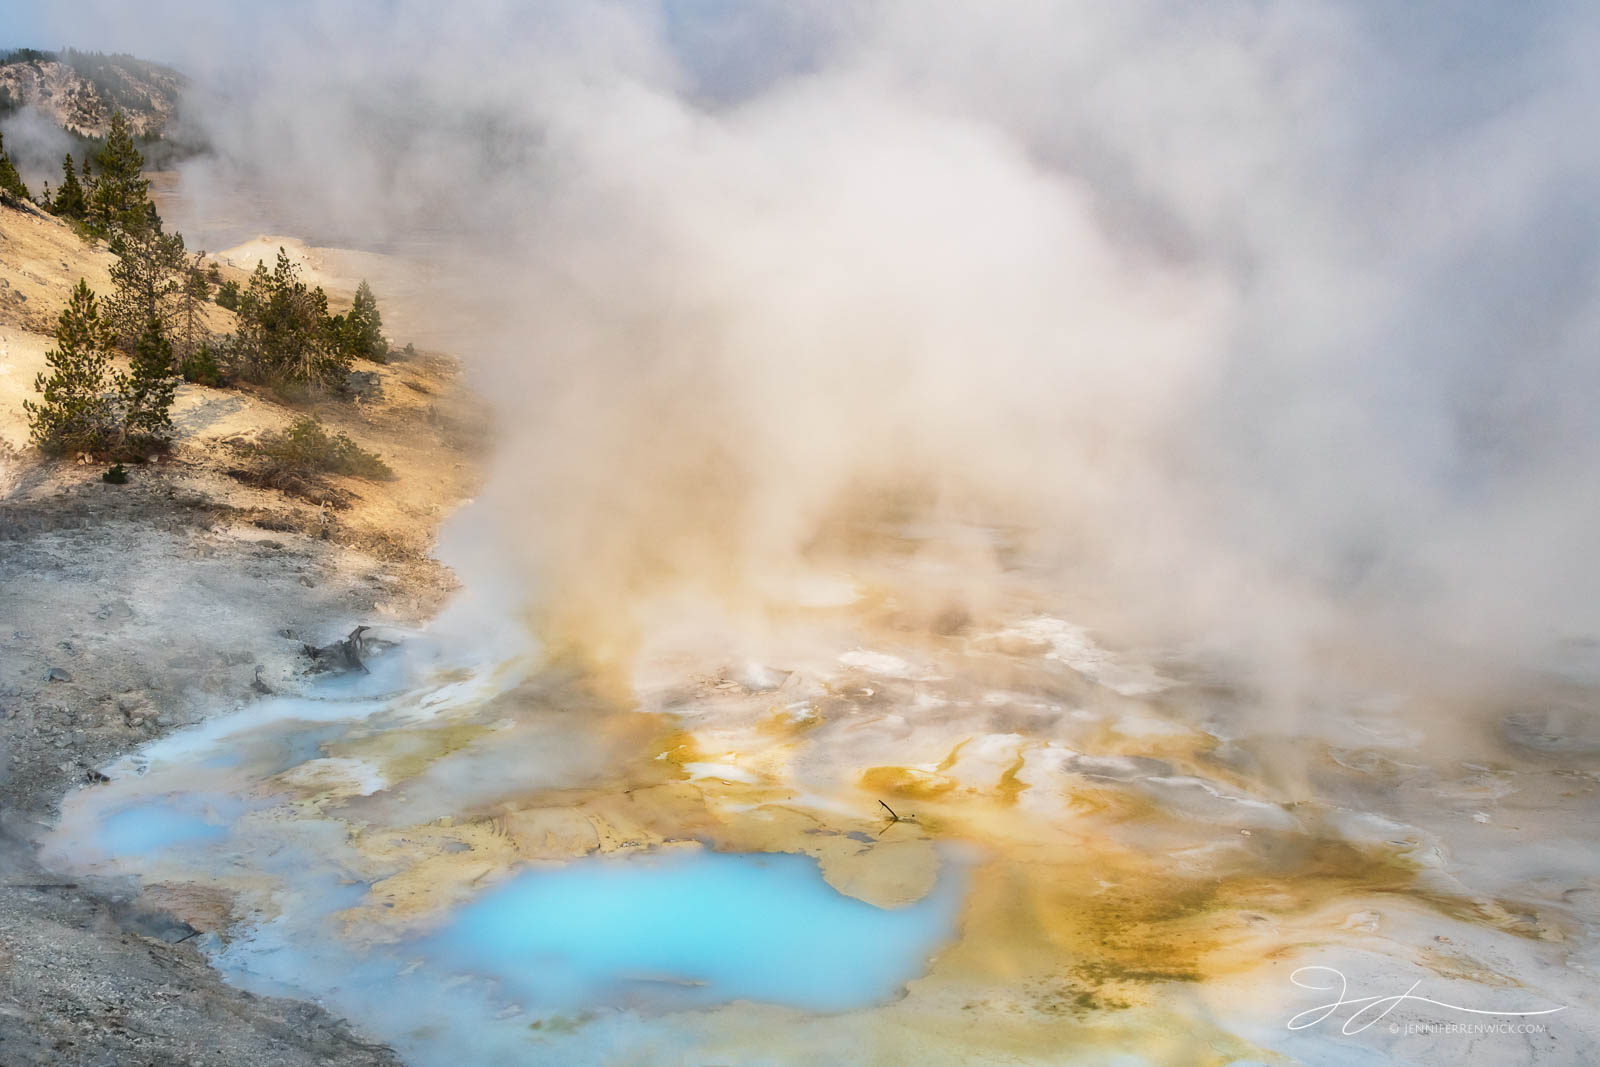 Porcelain Springs comes to life with color as the sun rises over Norris Geyser Basin.